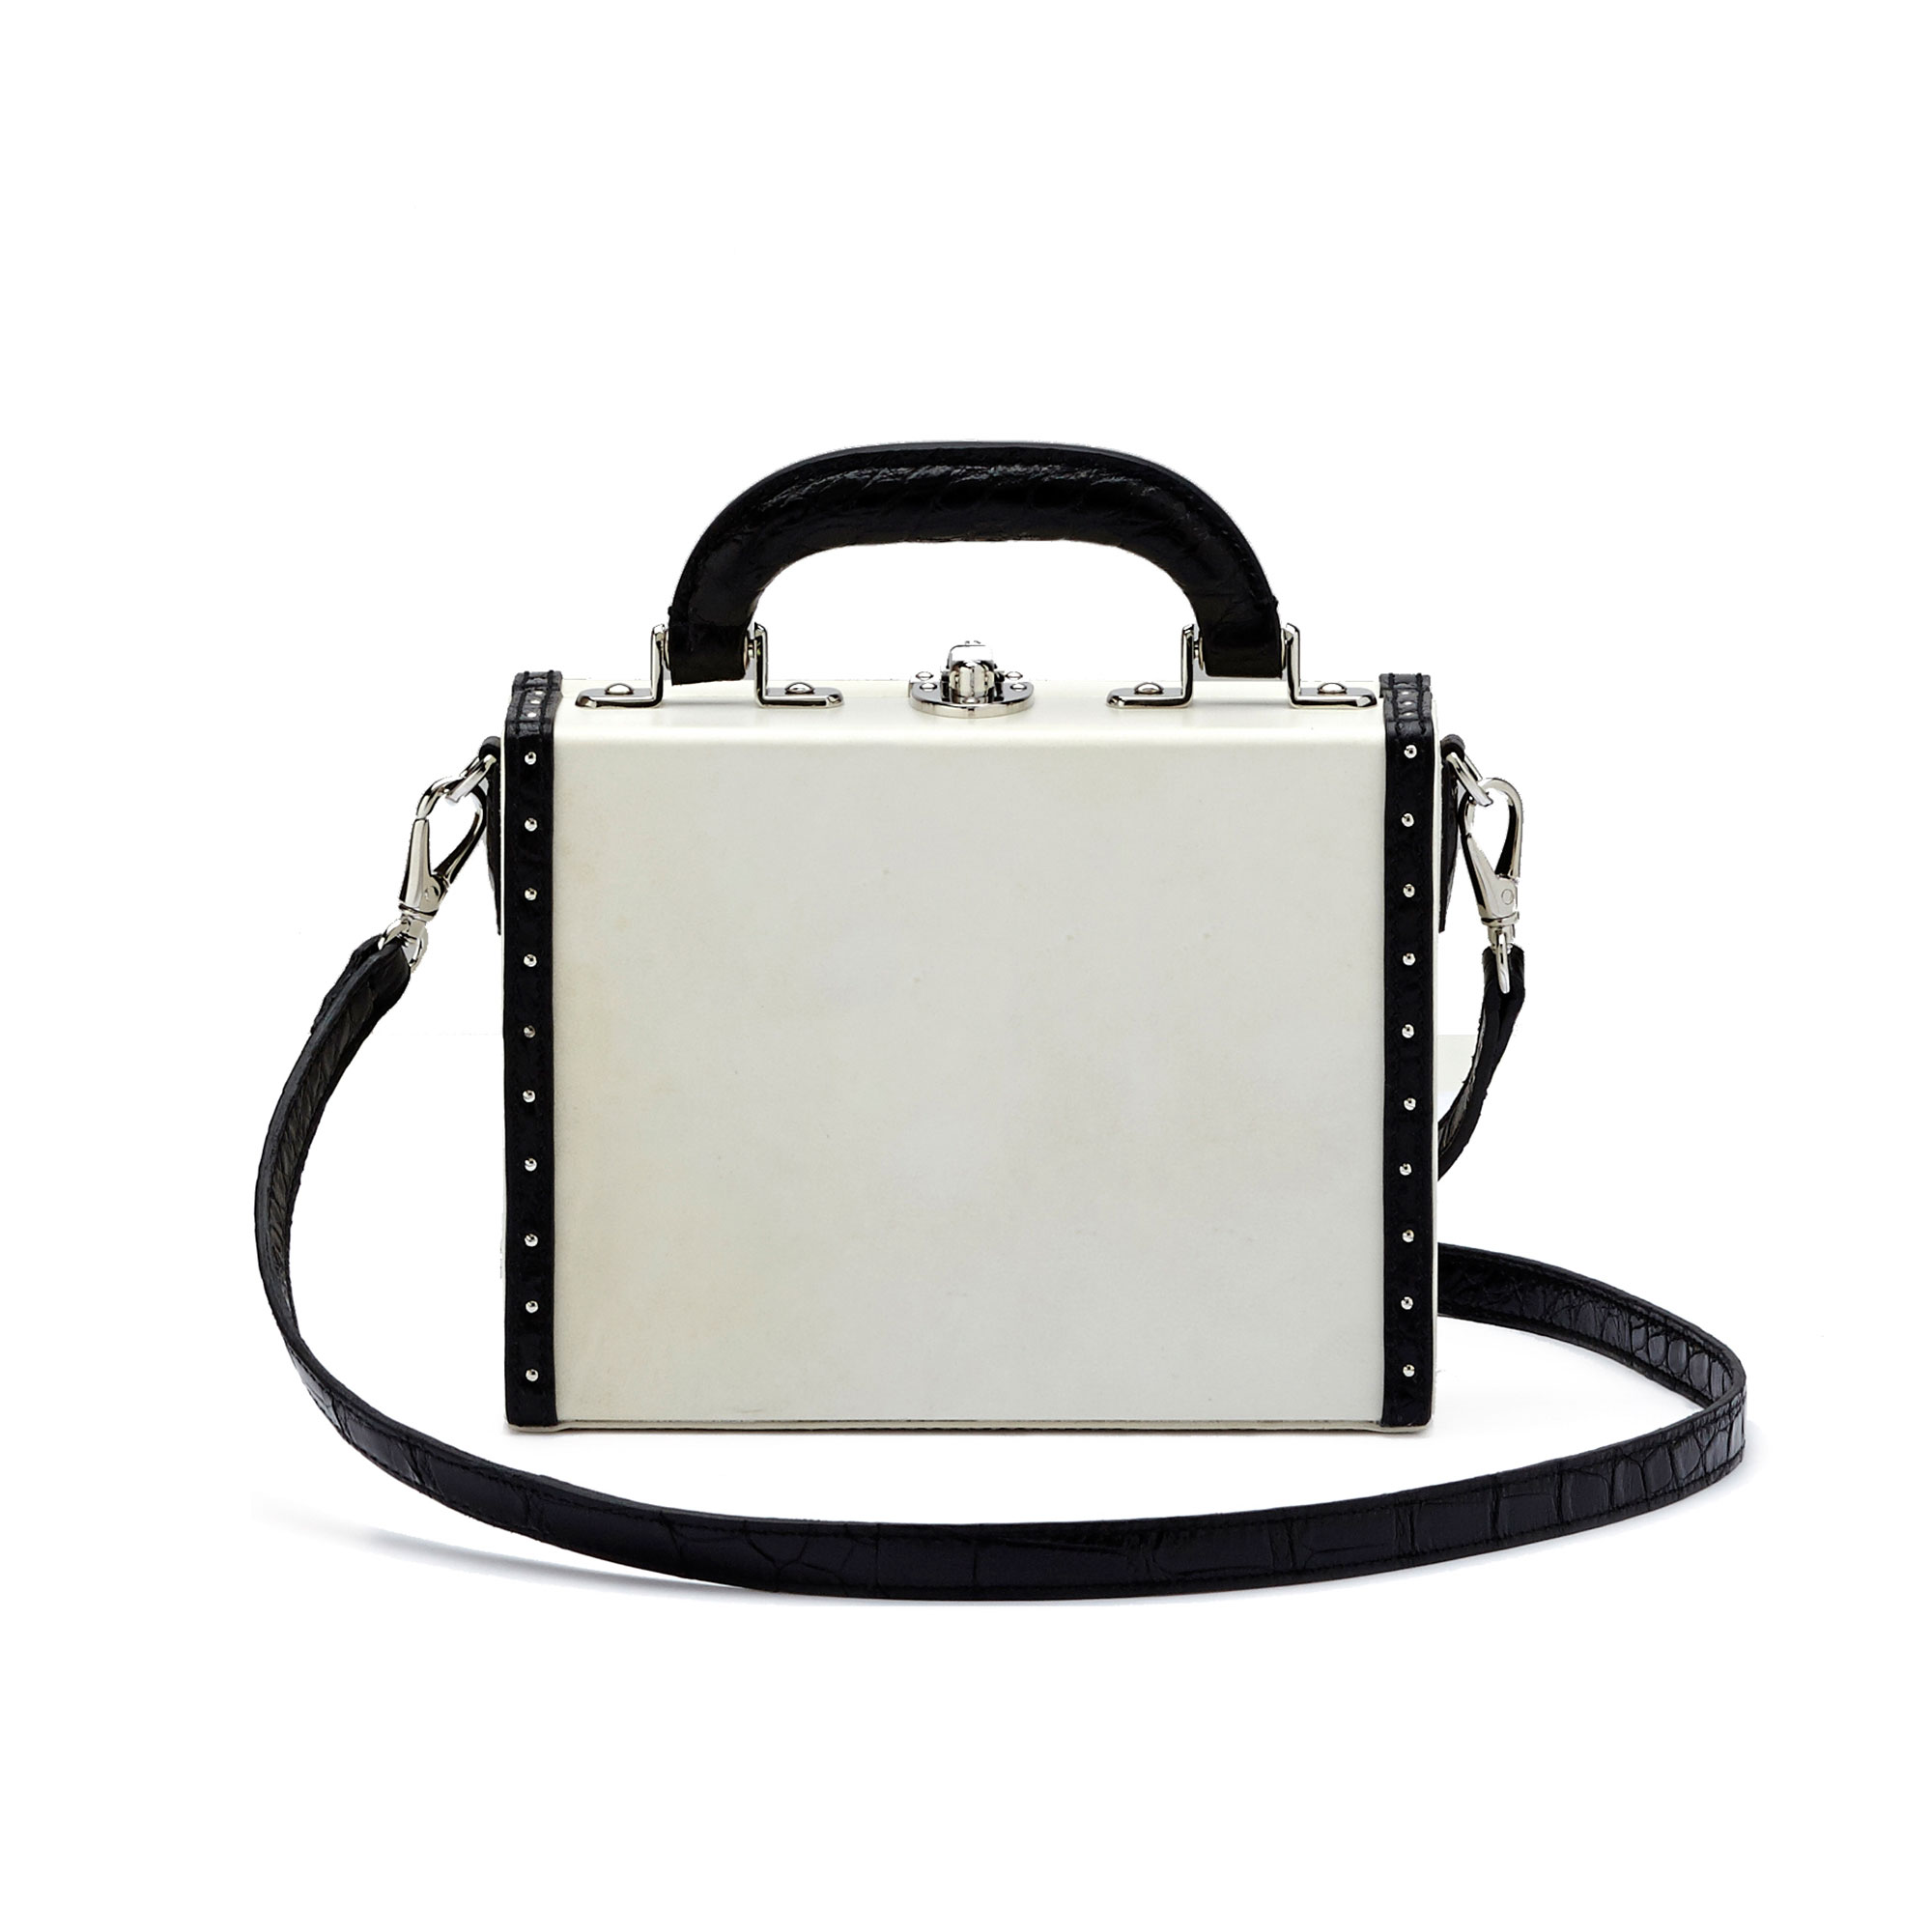 The parchment and black alligator with studs Mini Squared Bertoncina bag by Bertoni 1949 01